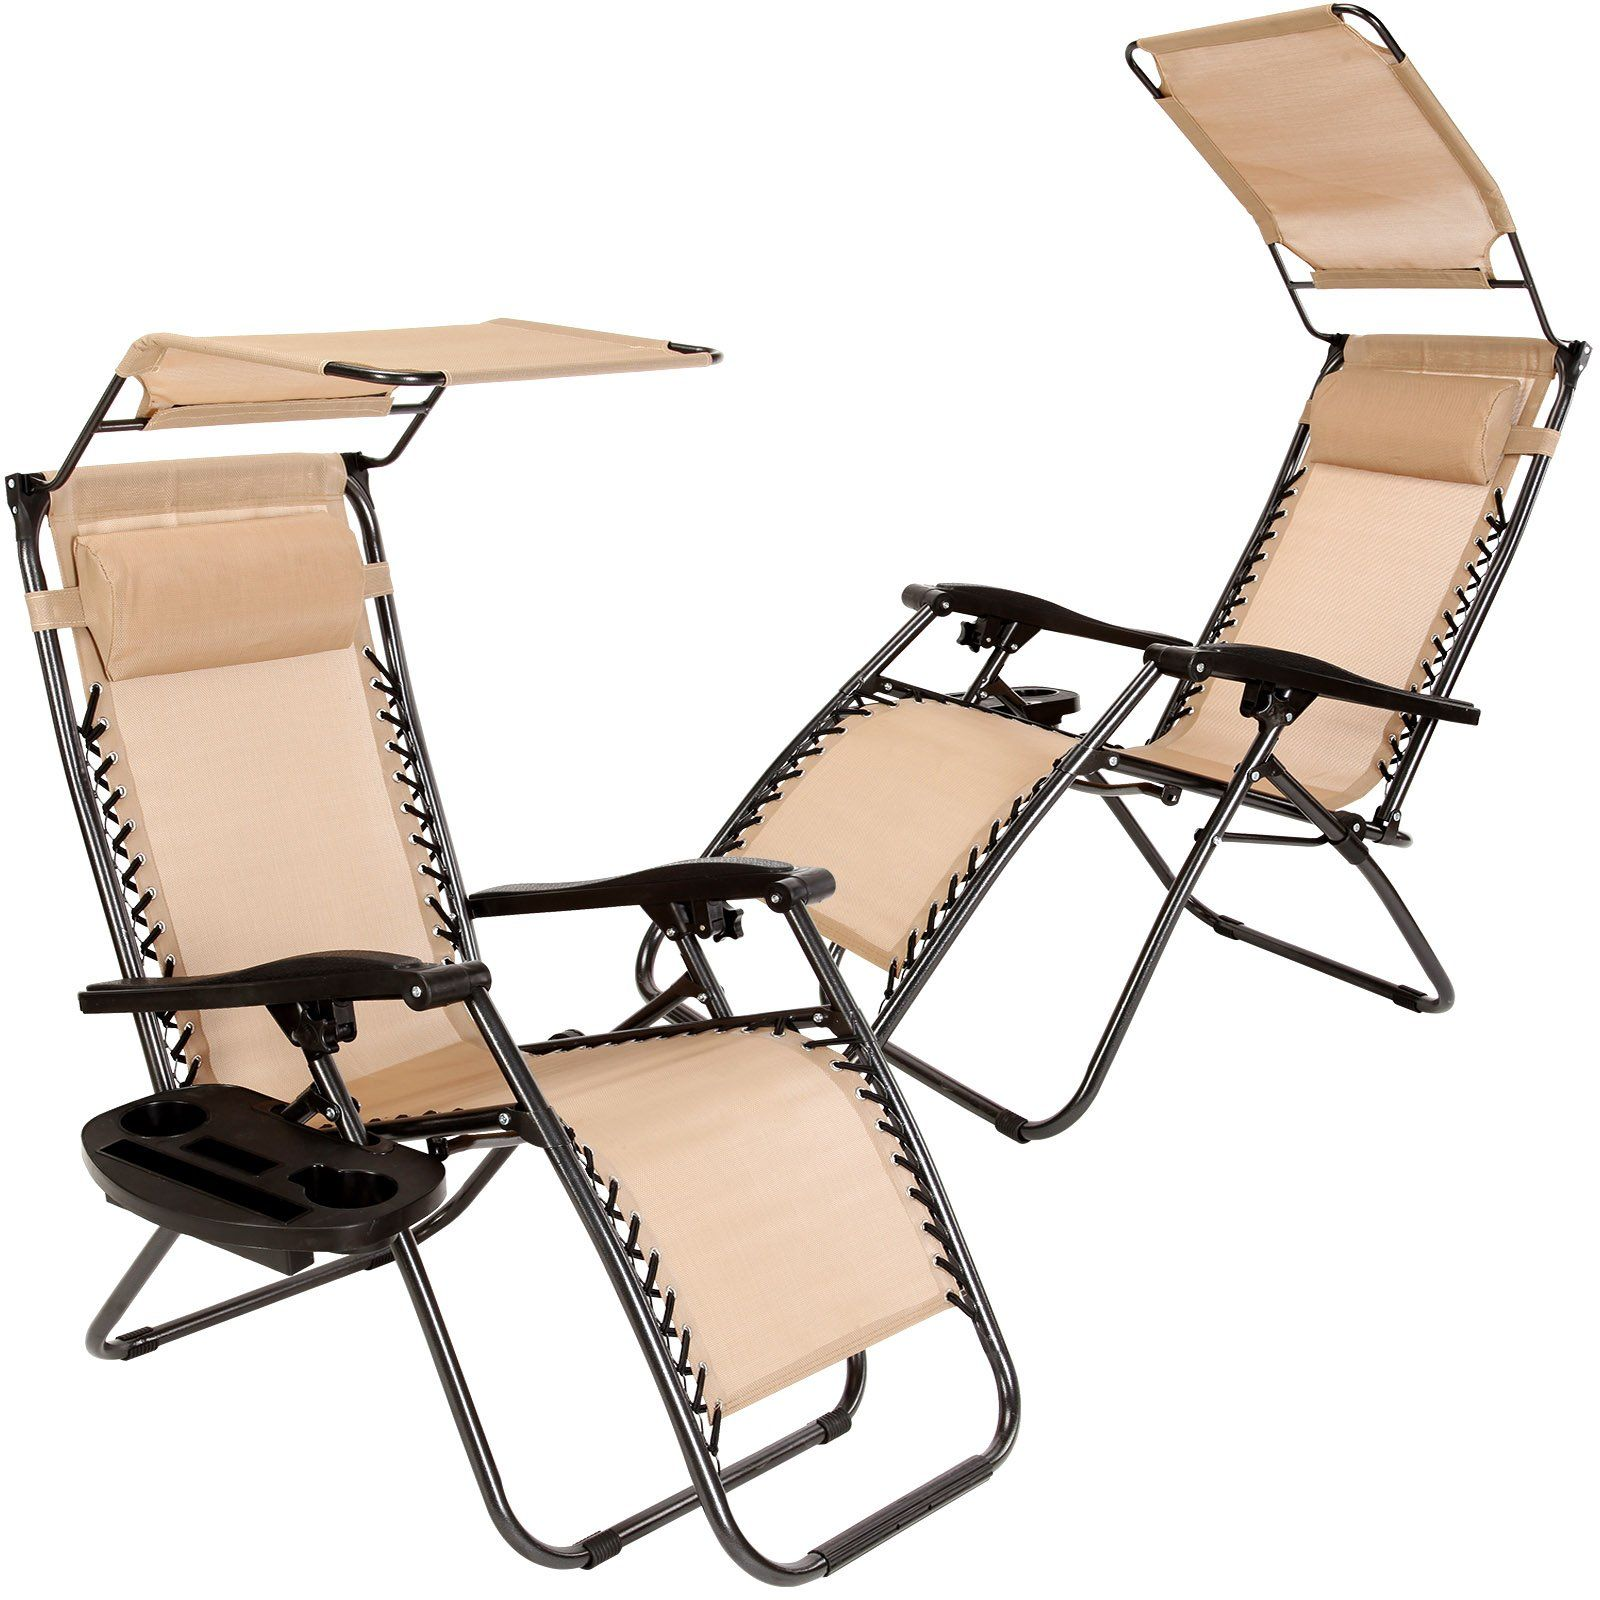 Set Of 2 Zero Gravity Outdoor Lounge Chairs W Sunshade Cup Holder